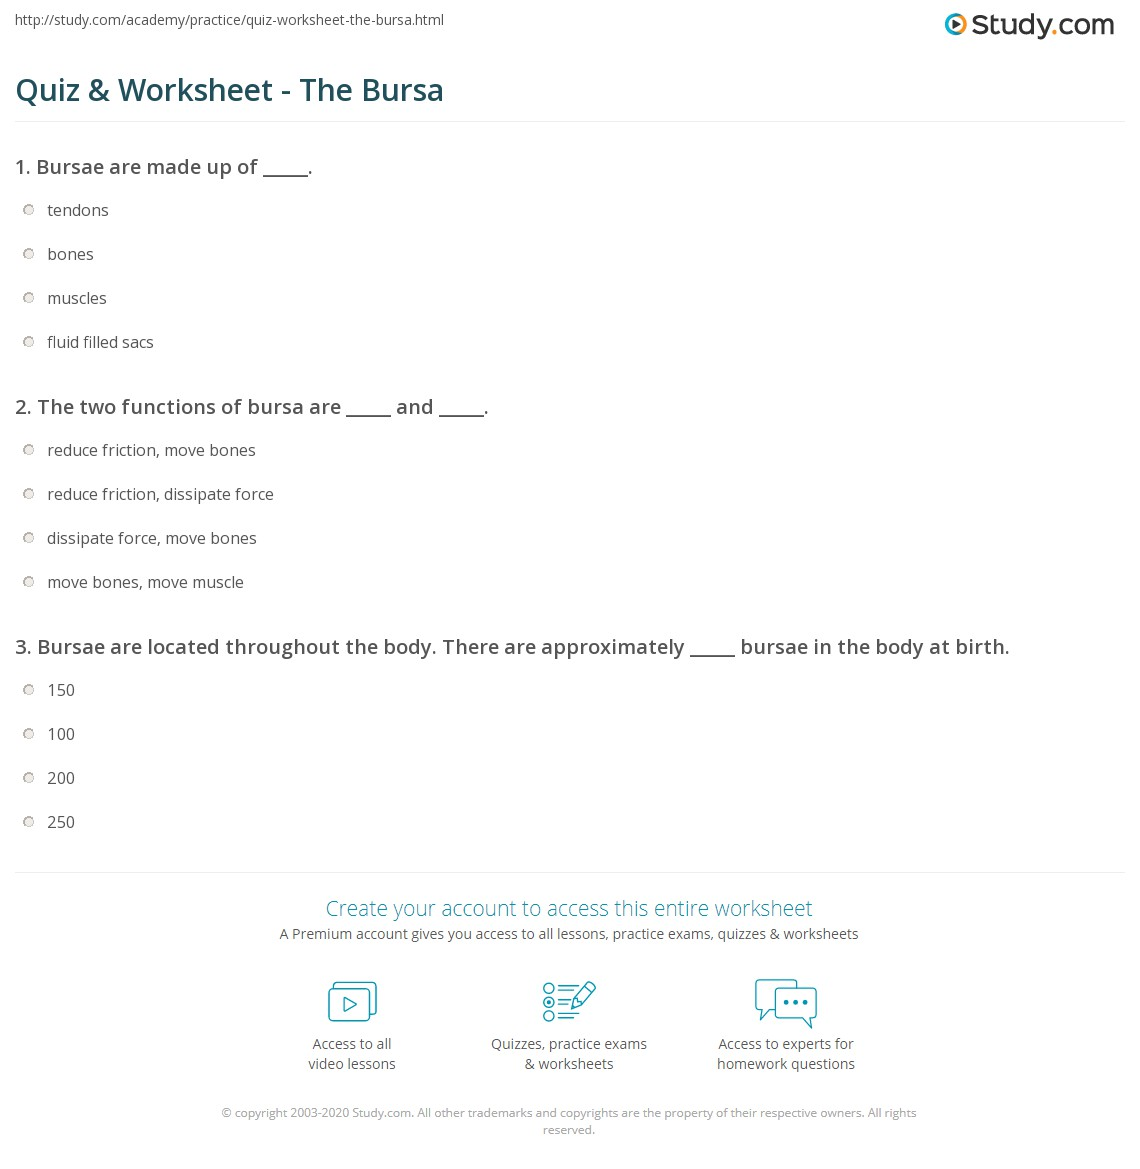 Quiz Worksheet The Bursa Study